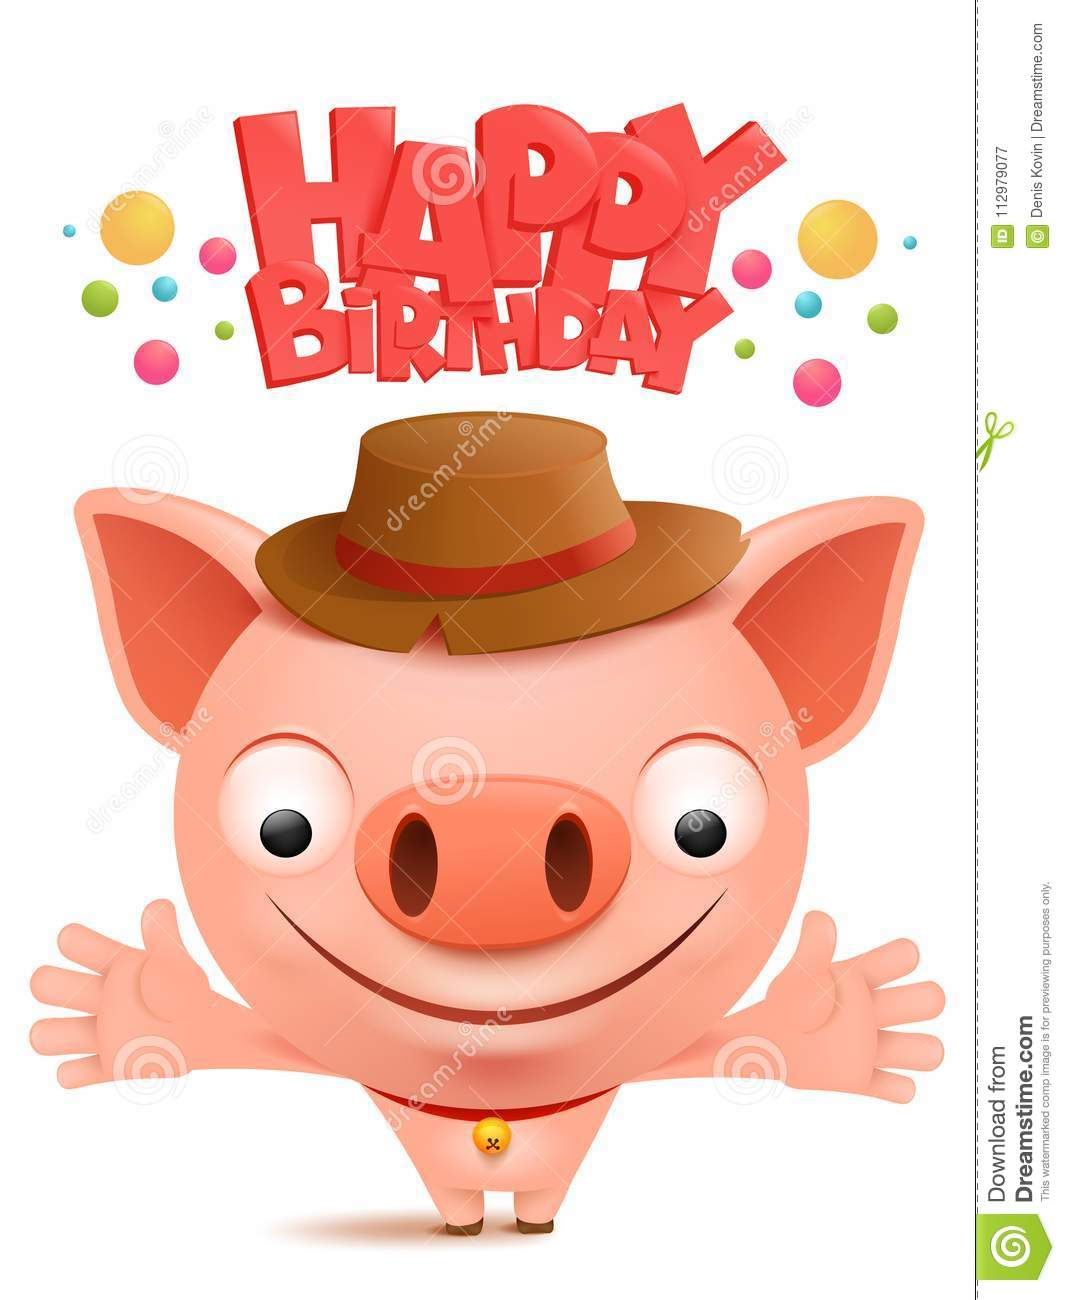 Happy birthday to you Funny little pig cartoon emoji character